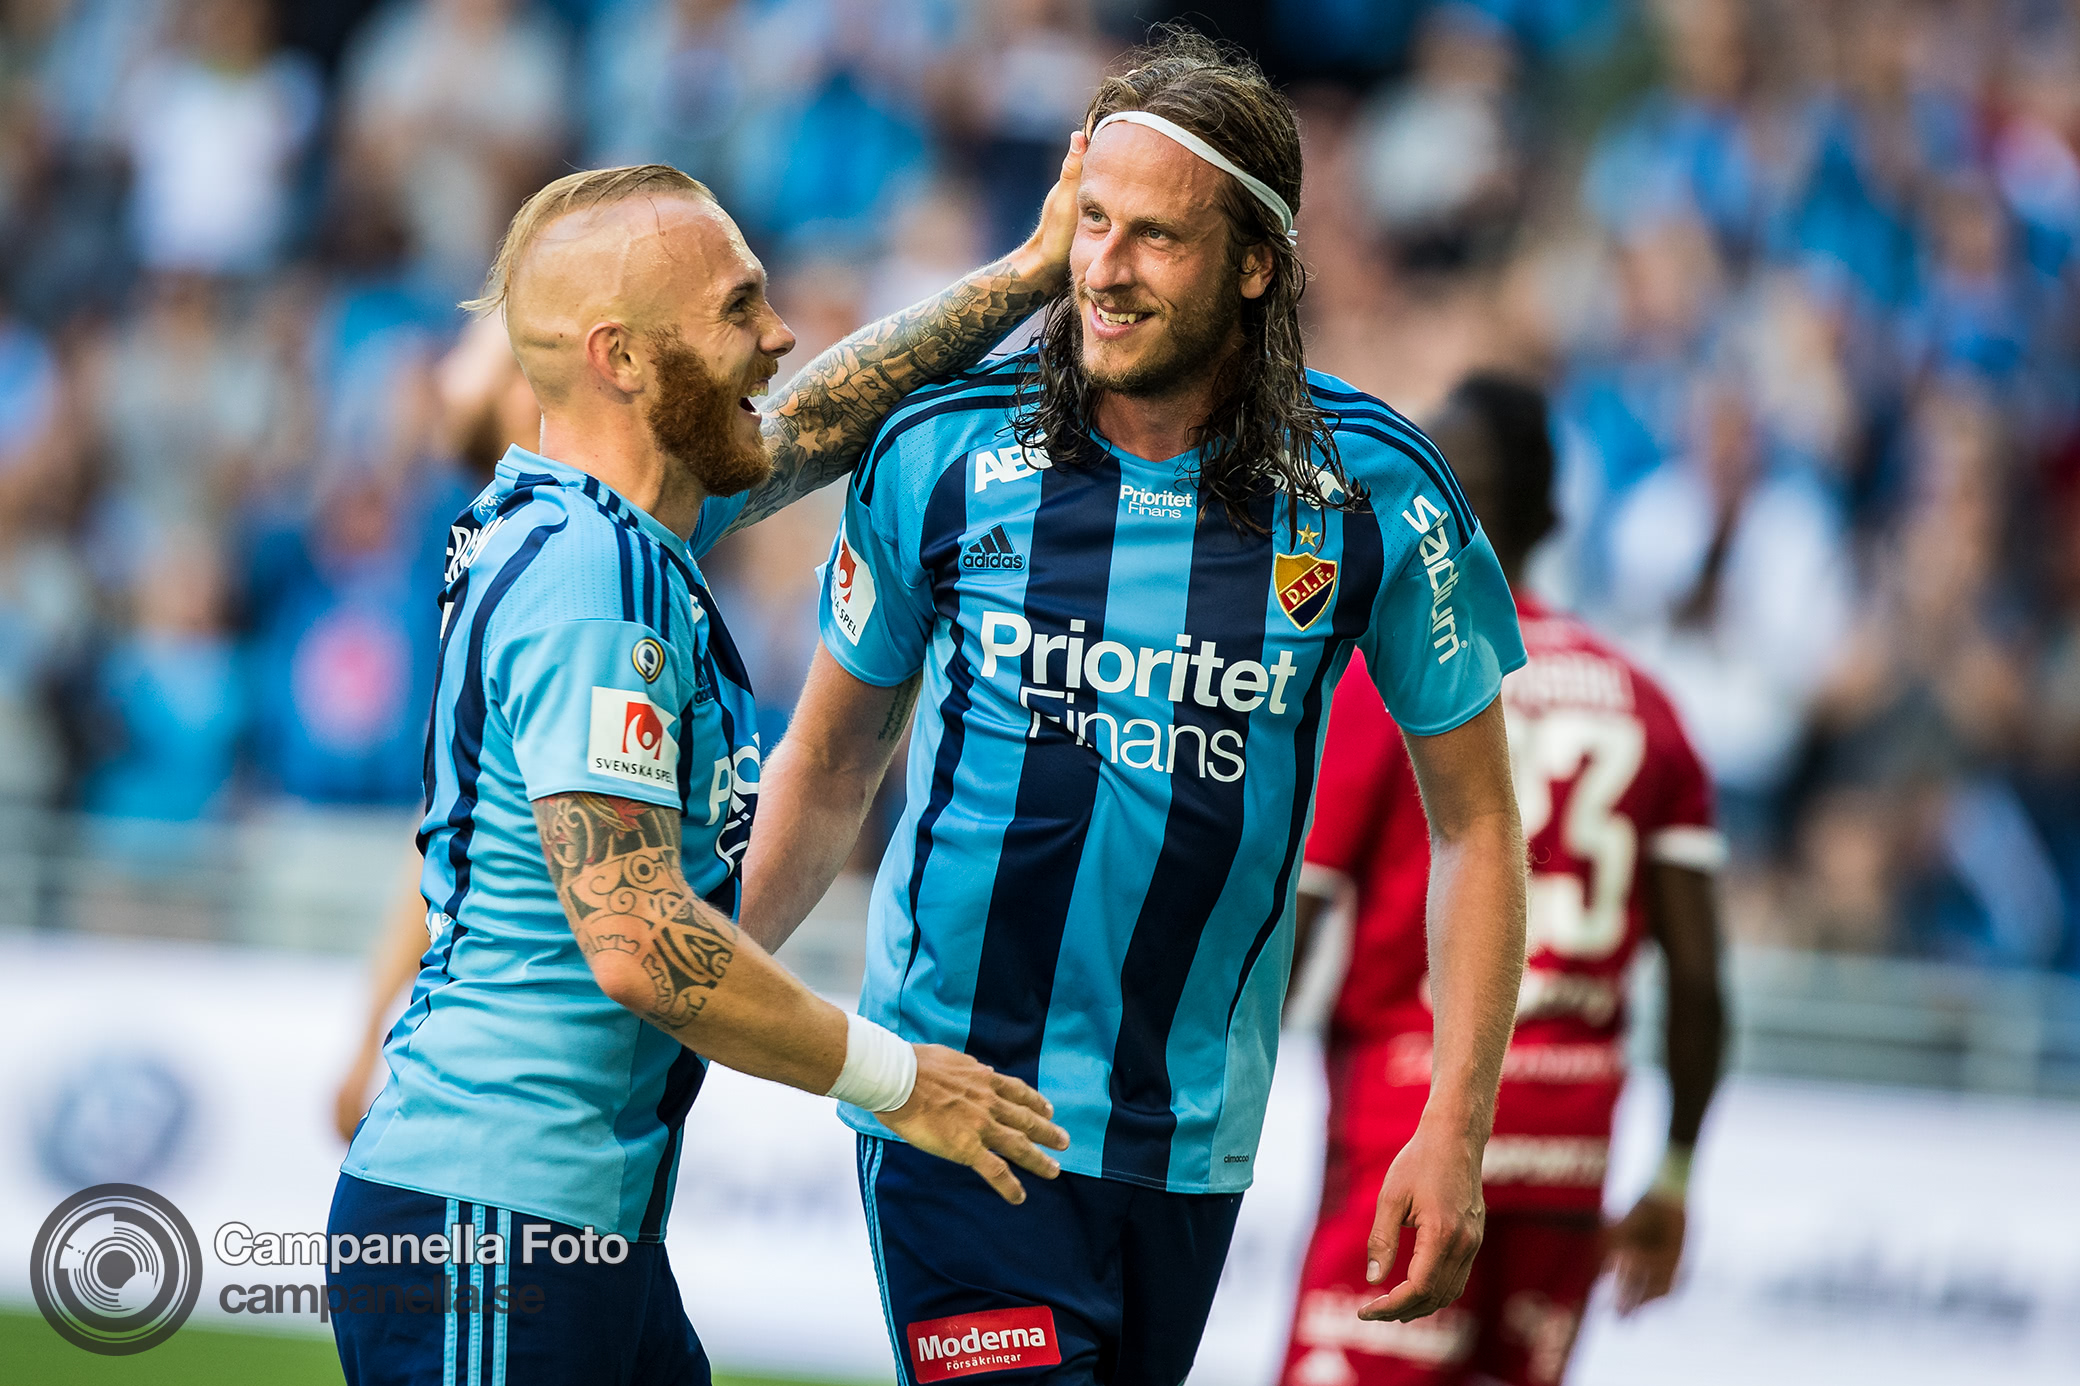 Djurgården sweeps away Östersund - Michael Campanella Photography